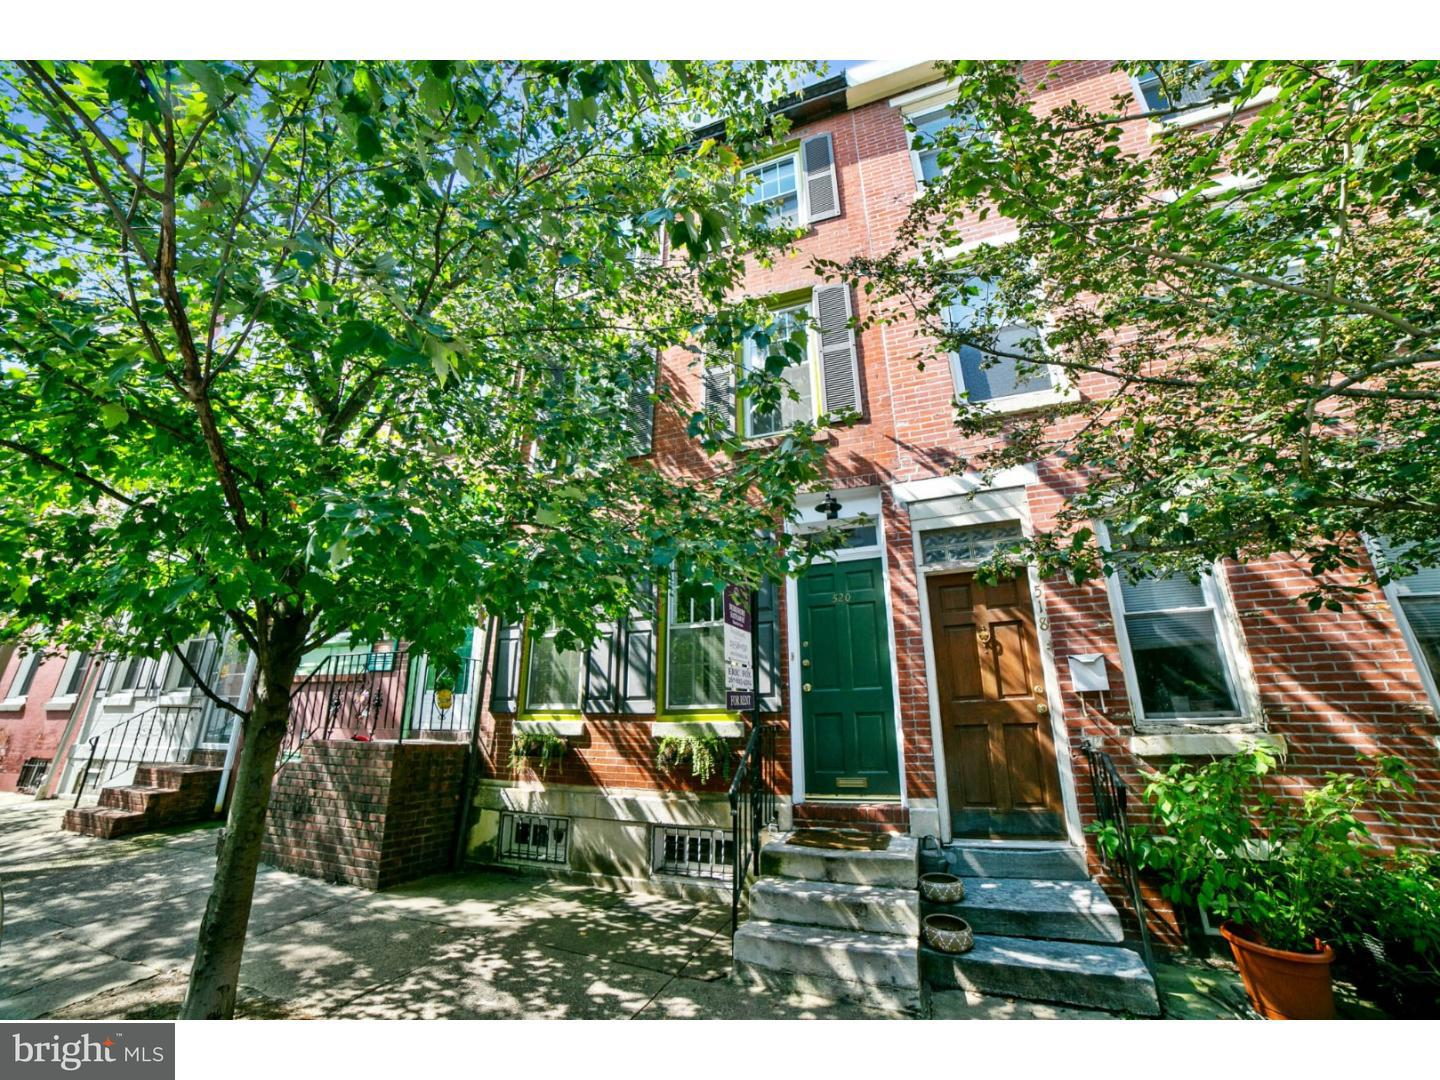 520 S 24TH Street Philadelphia, PA 19146